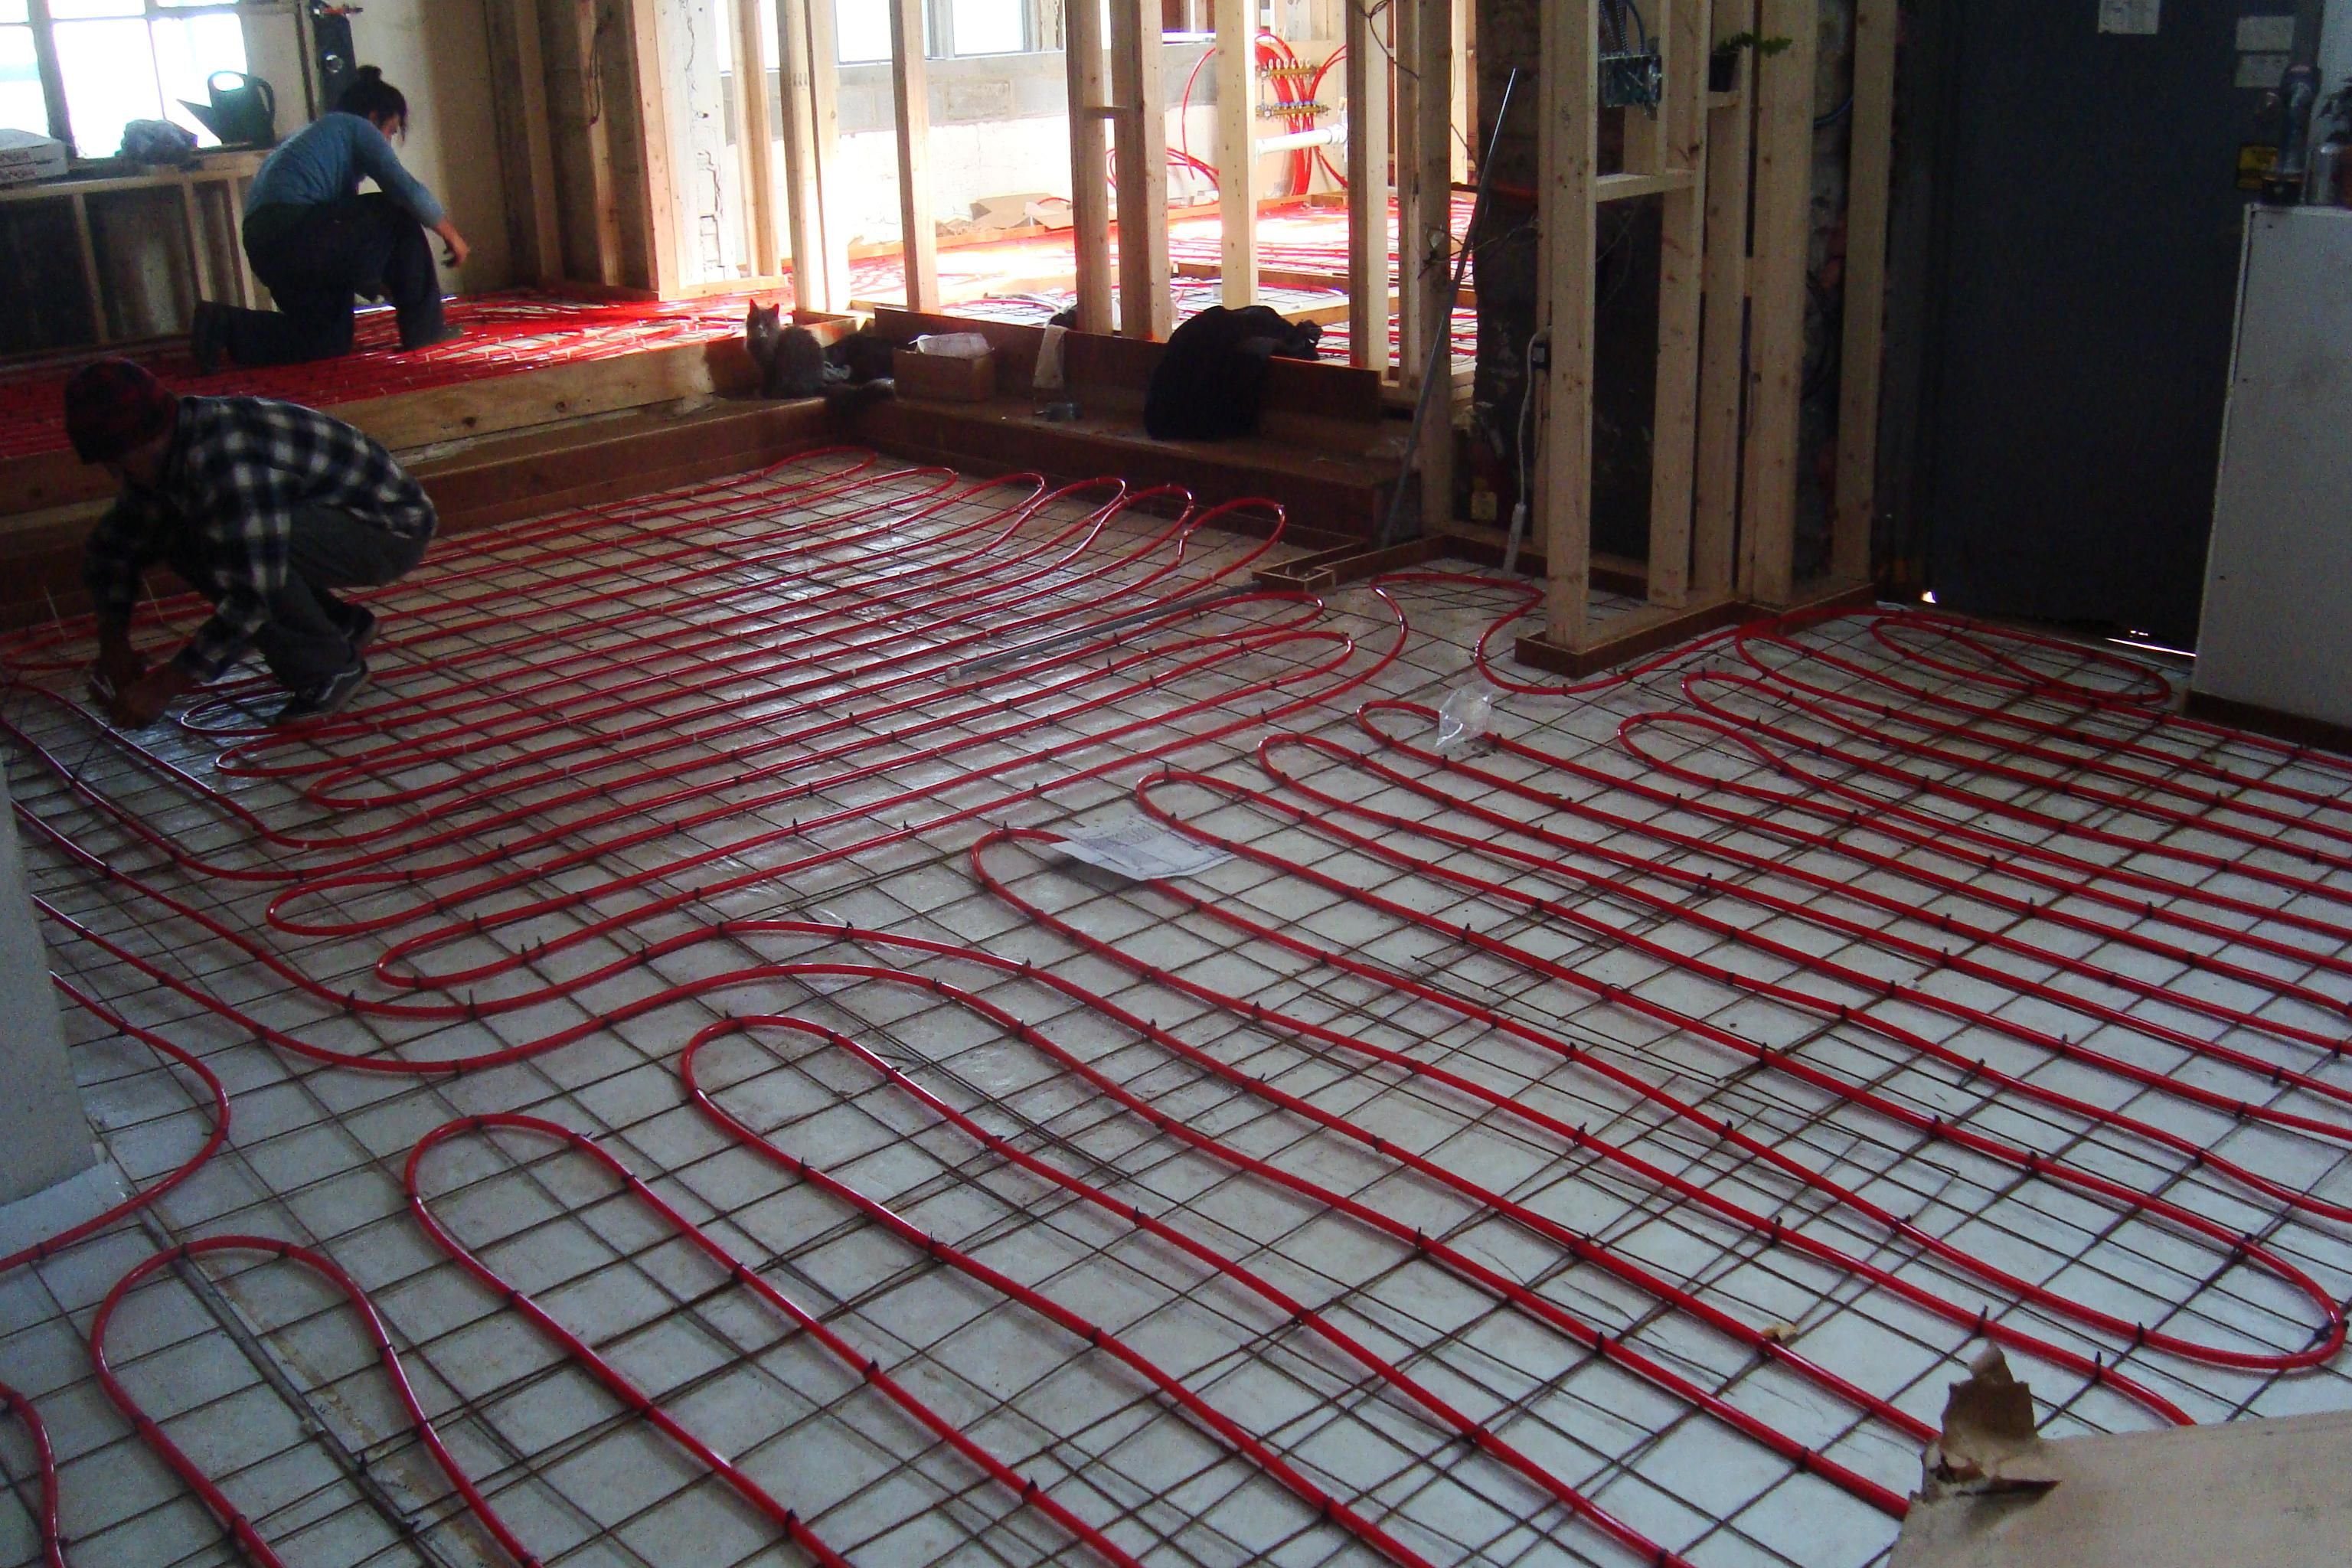 Electric radiant floor heating basics cost pros cons - How do heated bathroom floors work ...